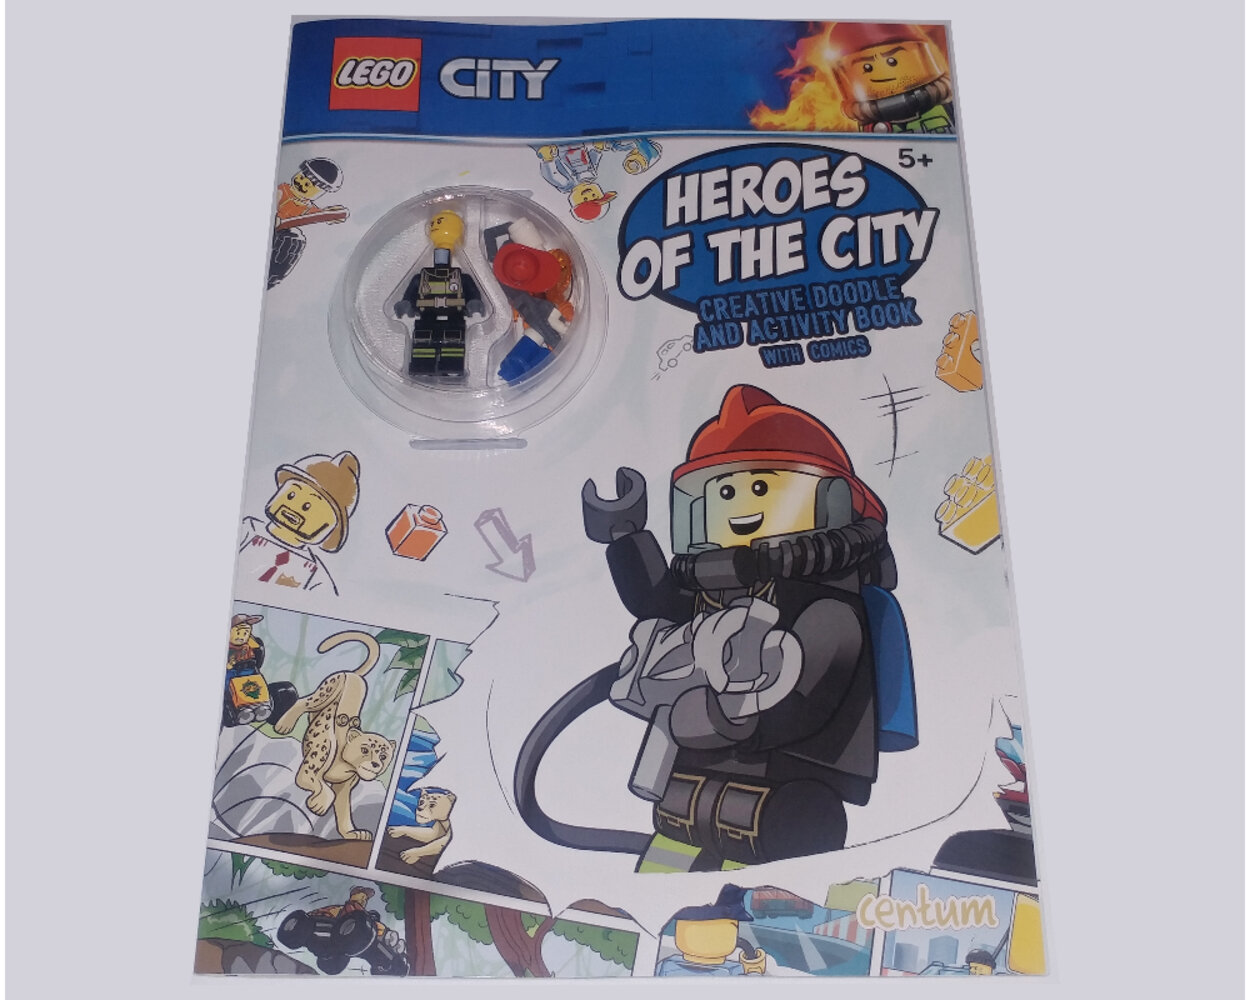 City: Heroes of the City